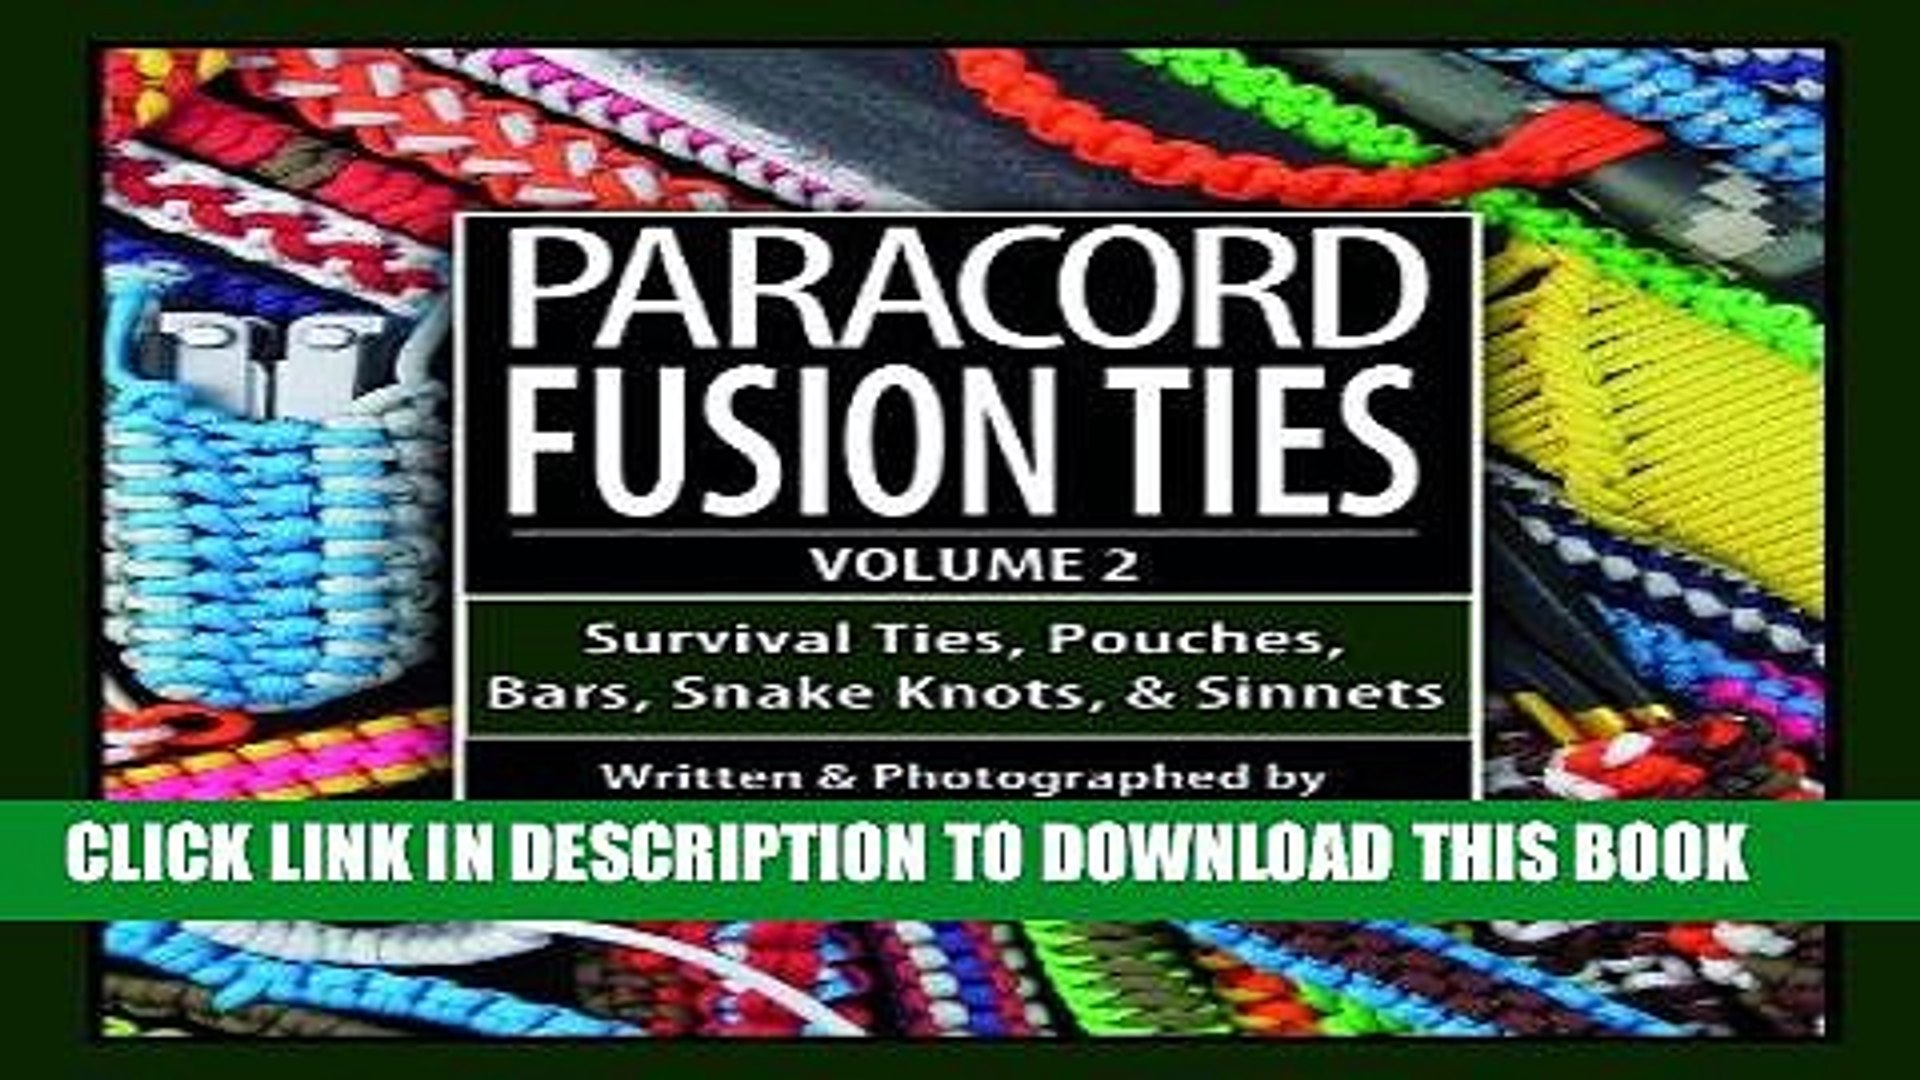 Read Now Paracord Fusion Ties - Volume 2: Survival Ties, Pouches, Bars, Snake Knots, and Sinnets